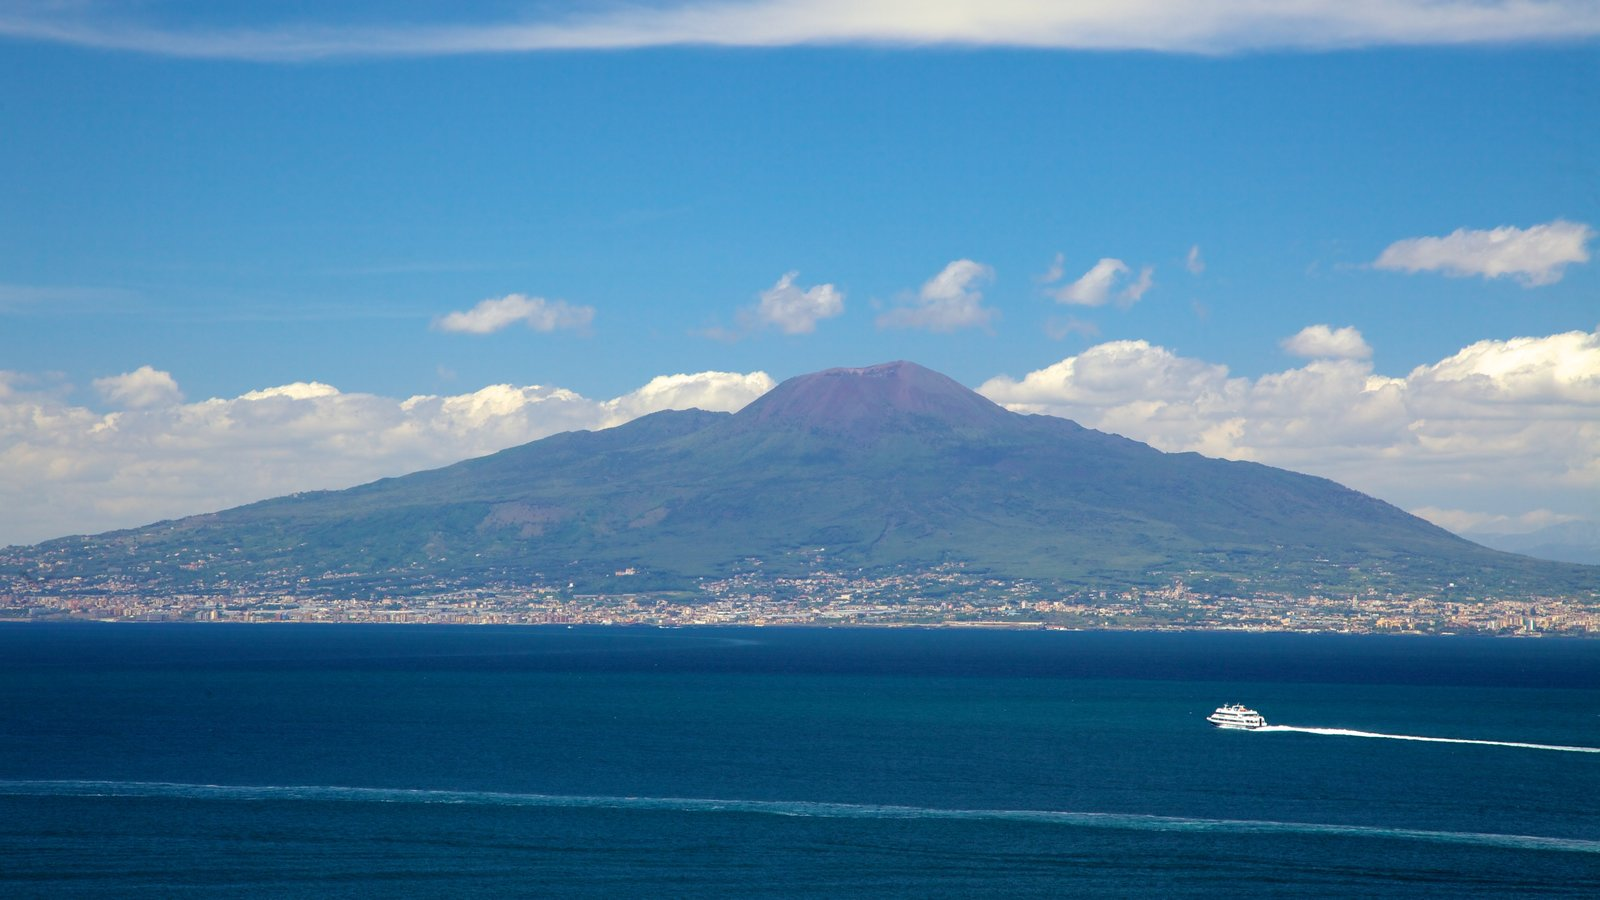 Mount Vesuvius - Pompei which includes general coastal views and mountains